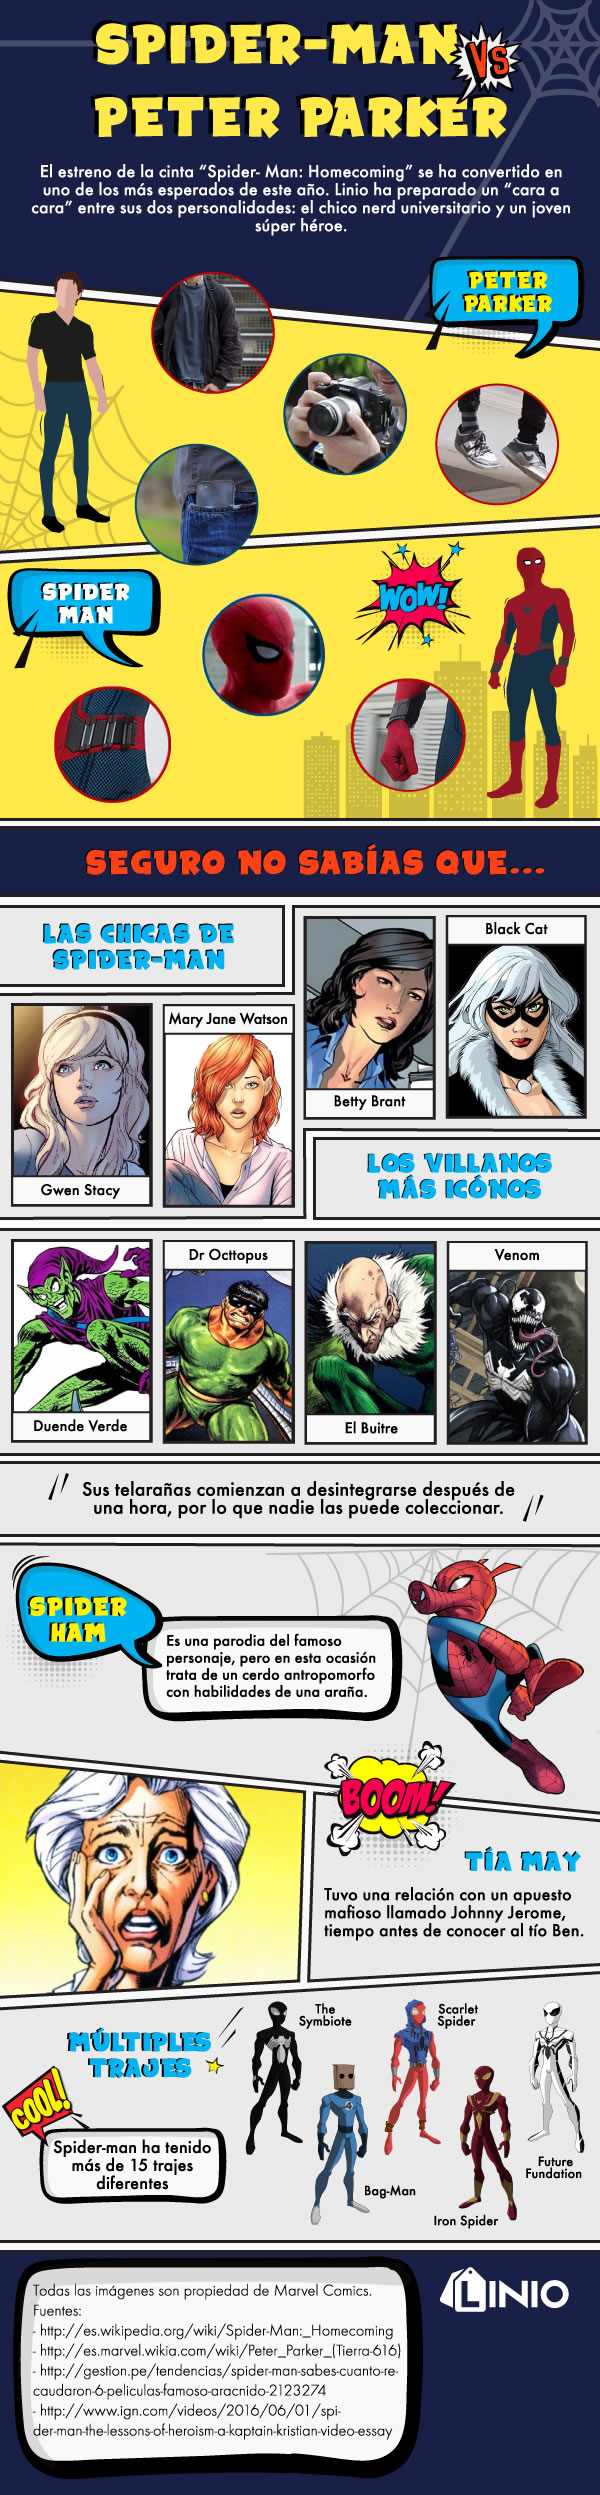 Cara a cara: Peter Parker vs Spider-Man - spiderman-2017-infografia